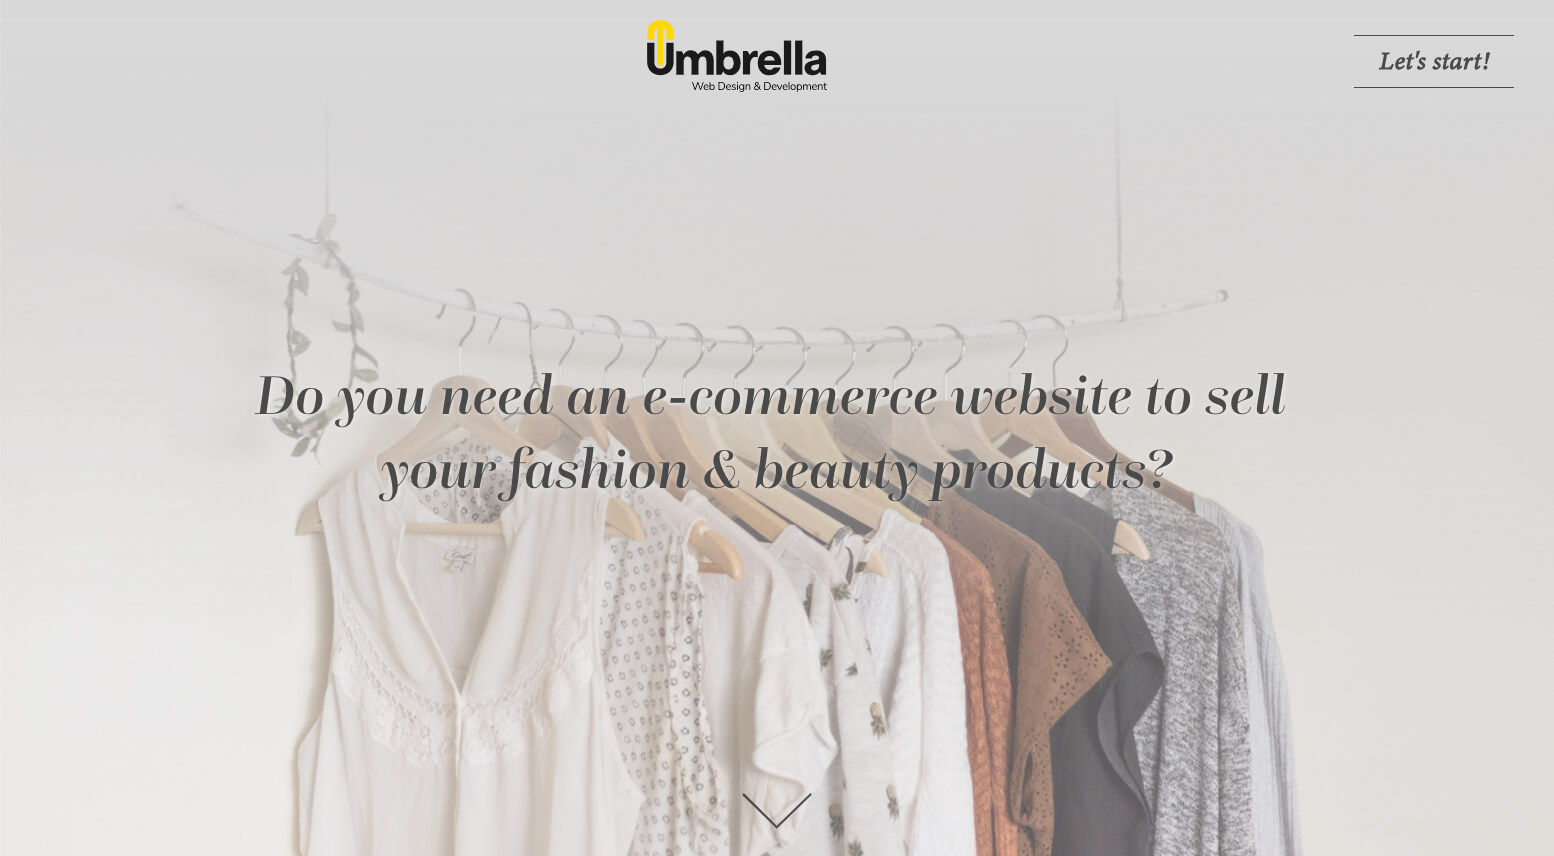 Create your fashion & beauty websites